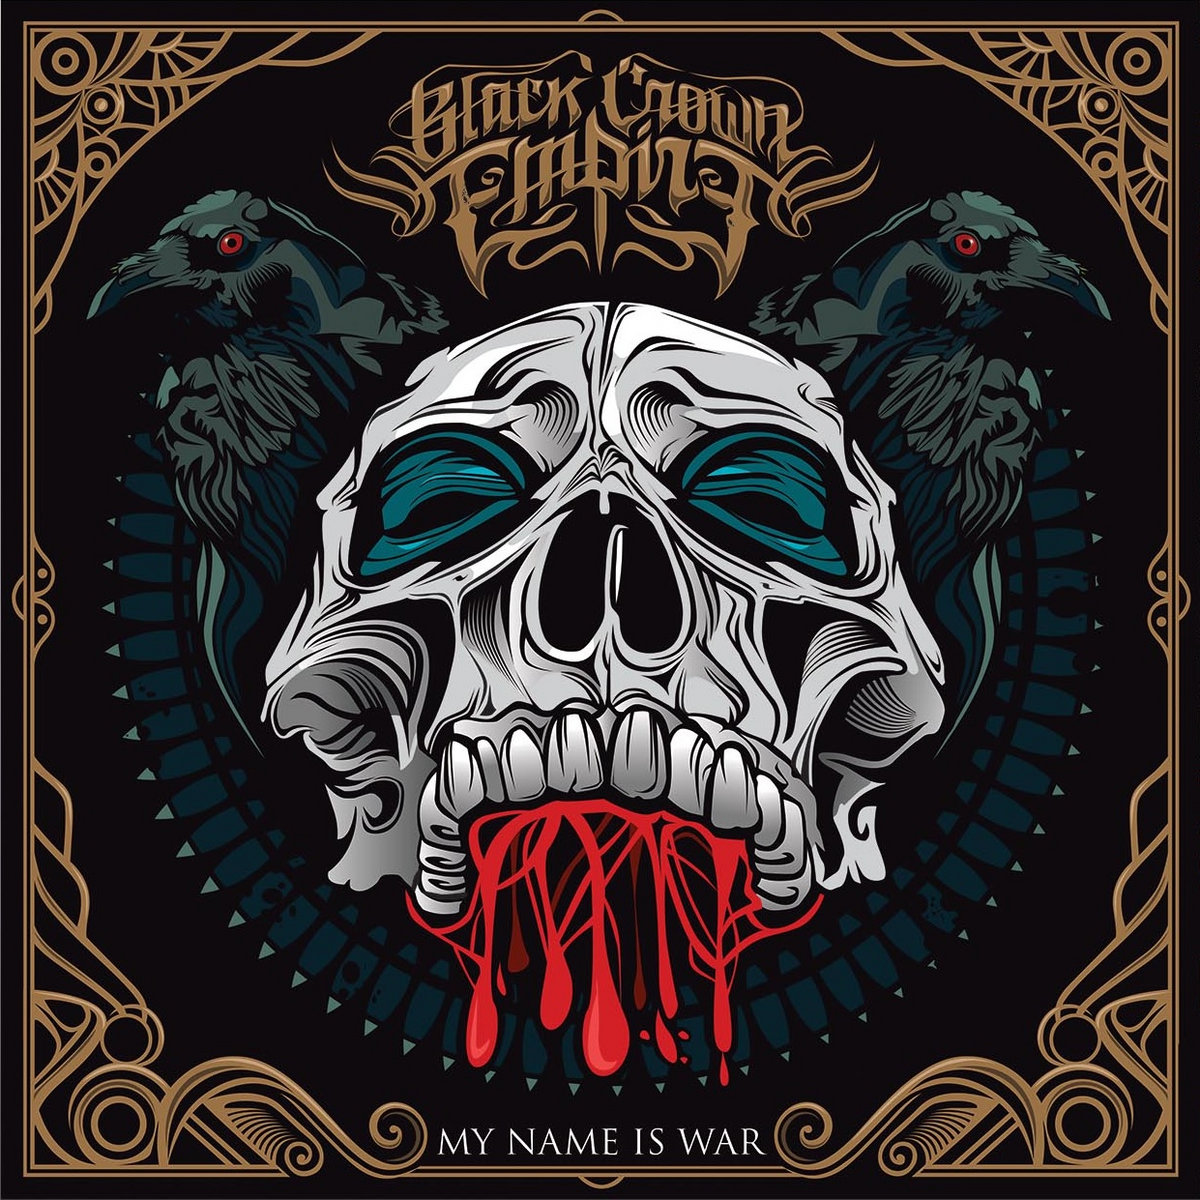 Bleed U Out | Black Crown Empire